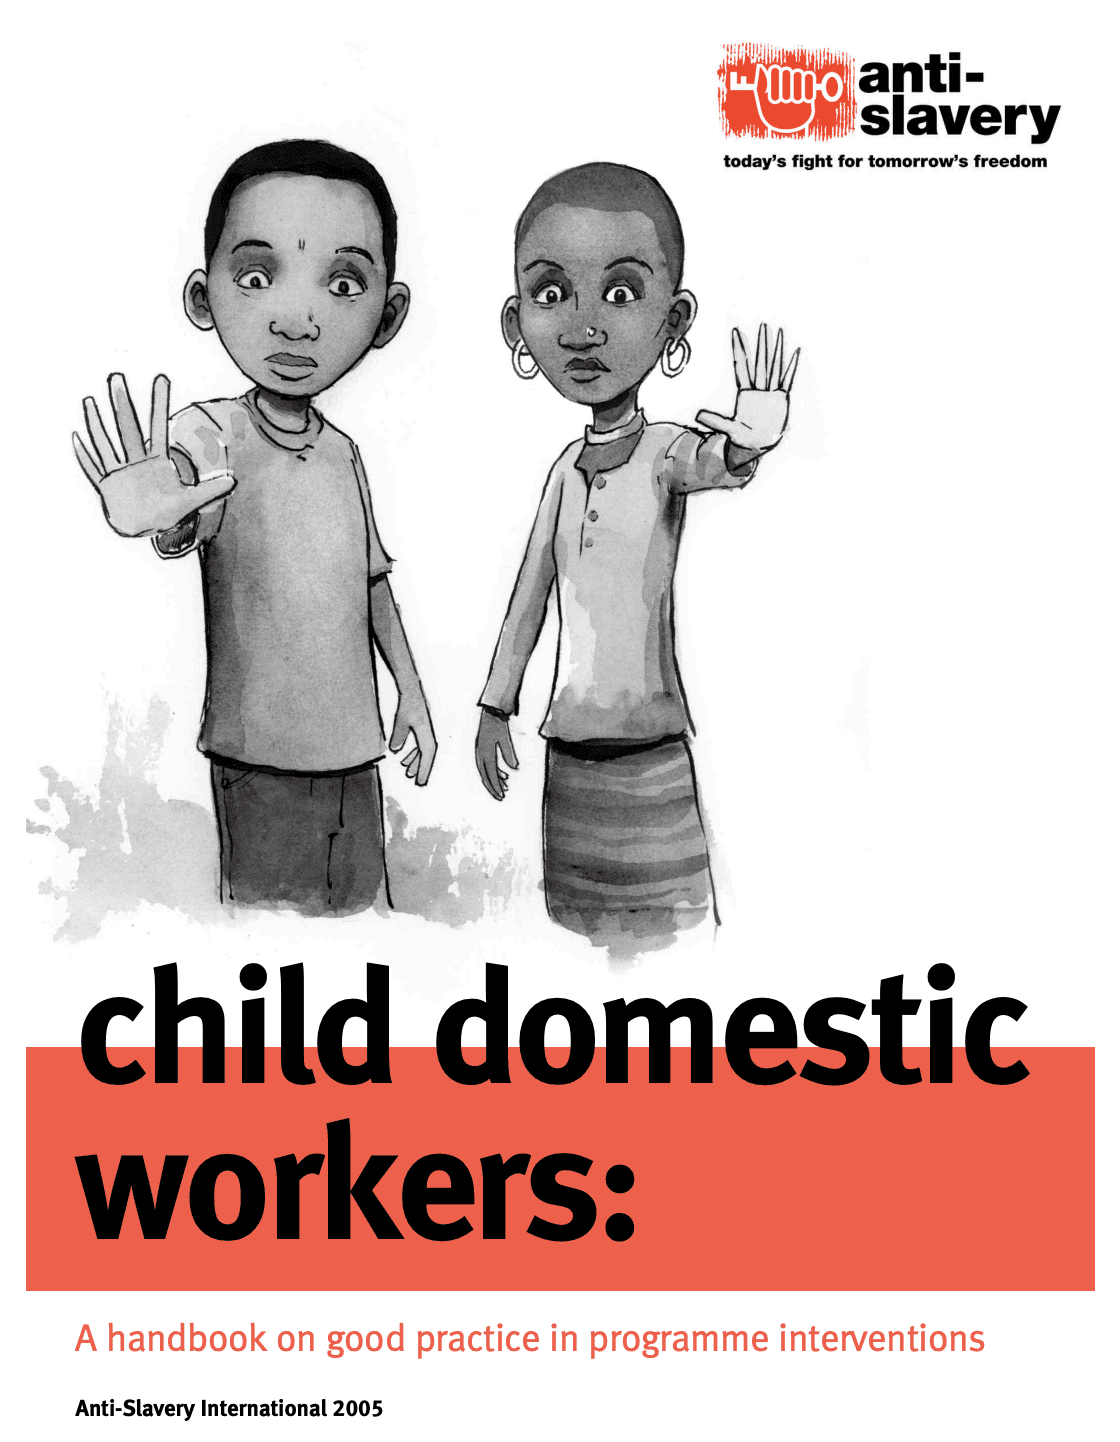 Child Domestic Workers: A handbook on good practice in programme interventions